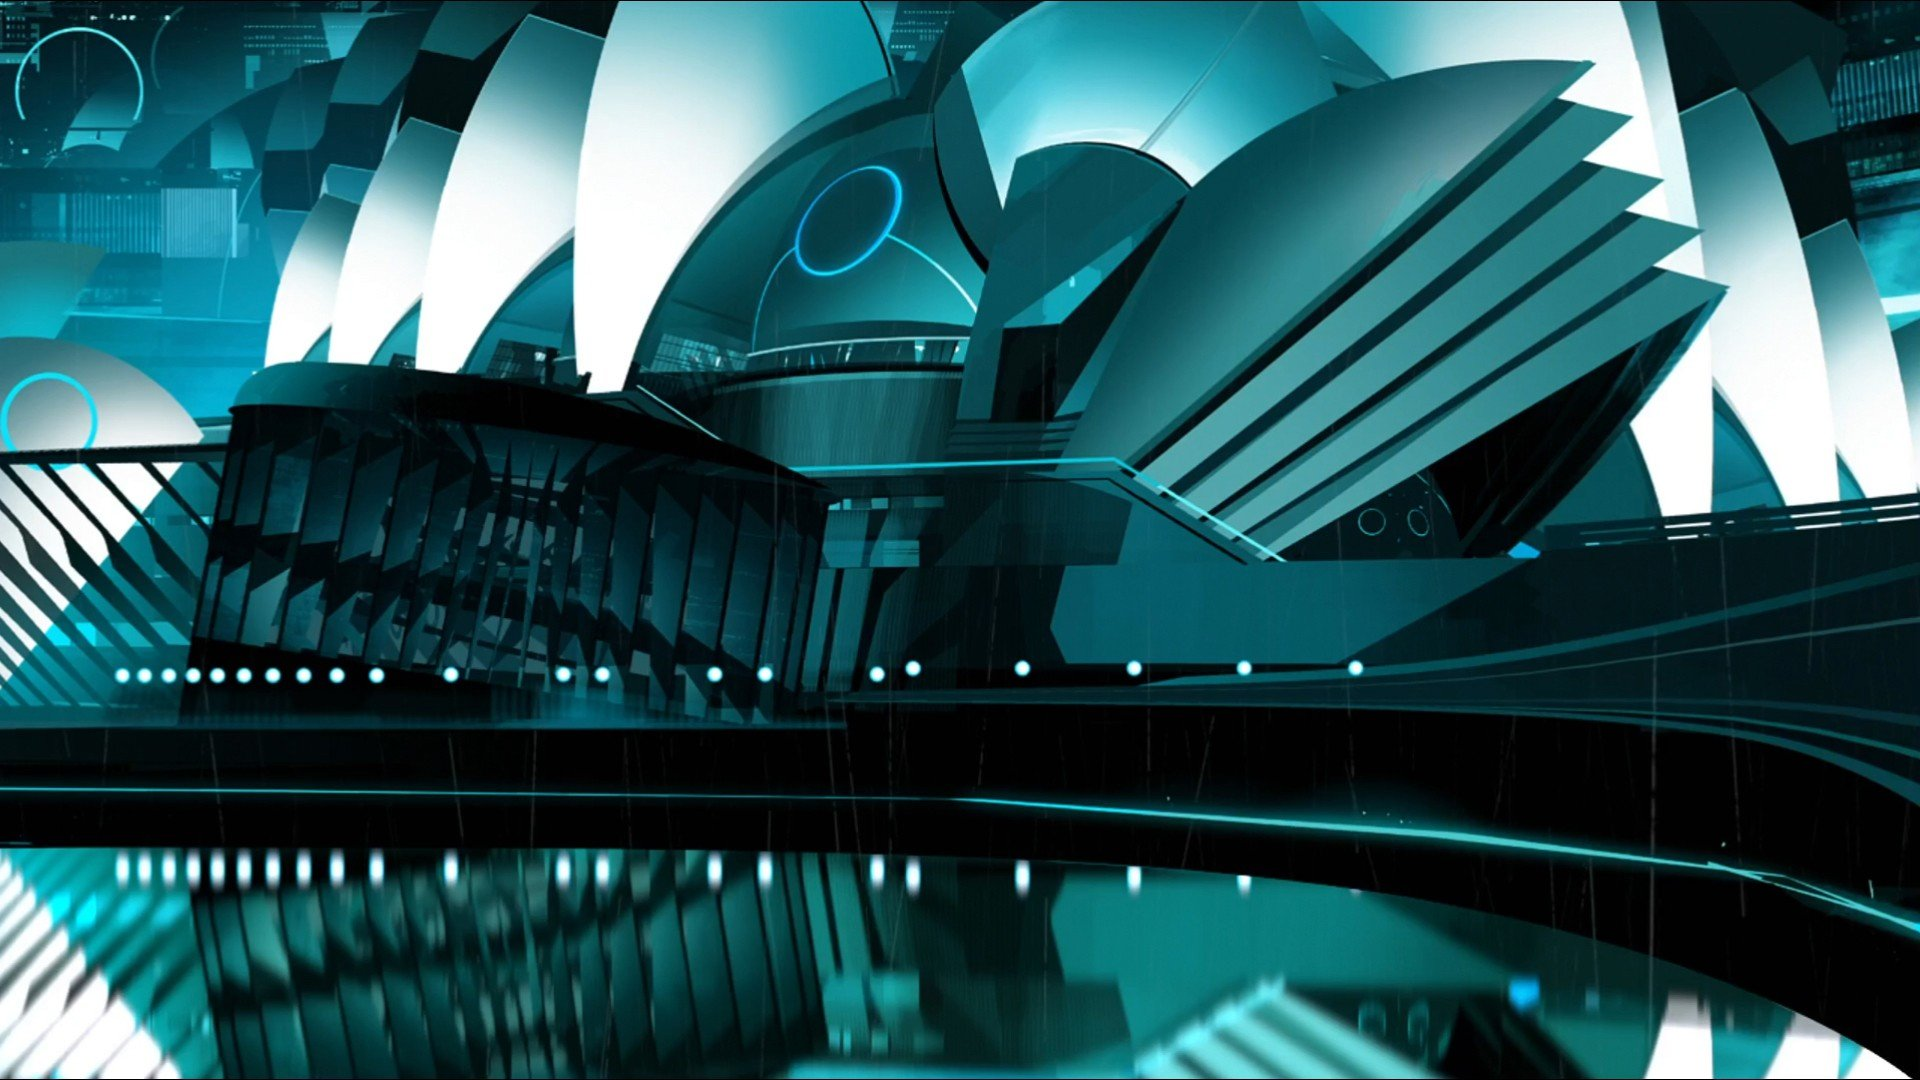 Tron HD Wallpapers Desktop And Mobile Images Photos